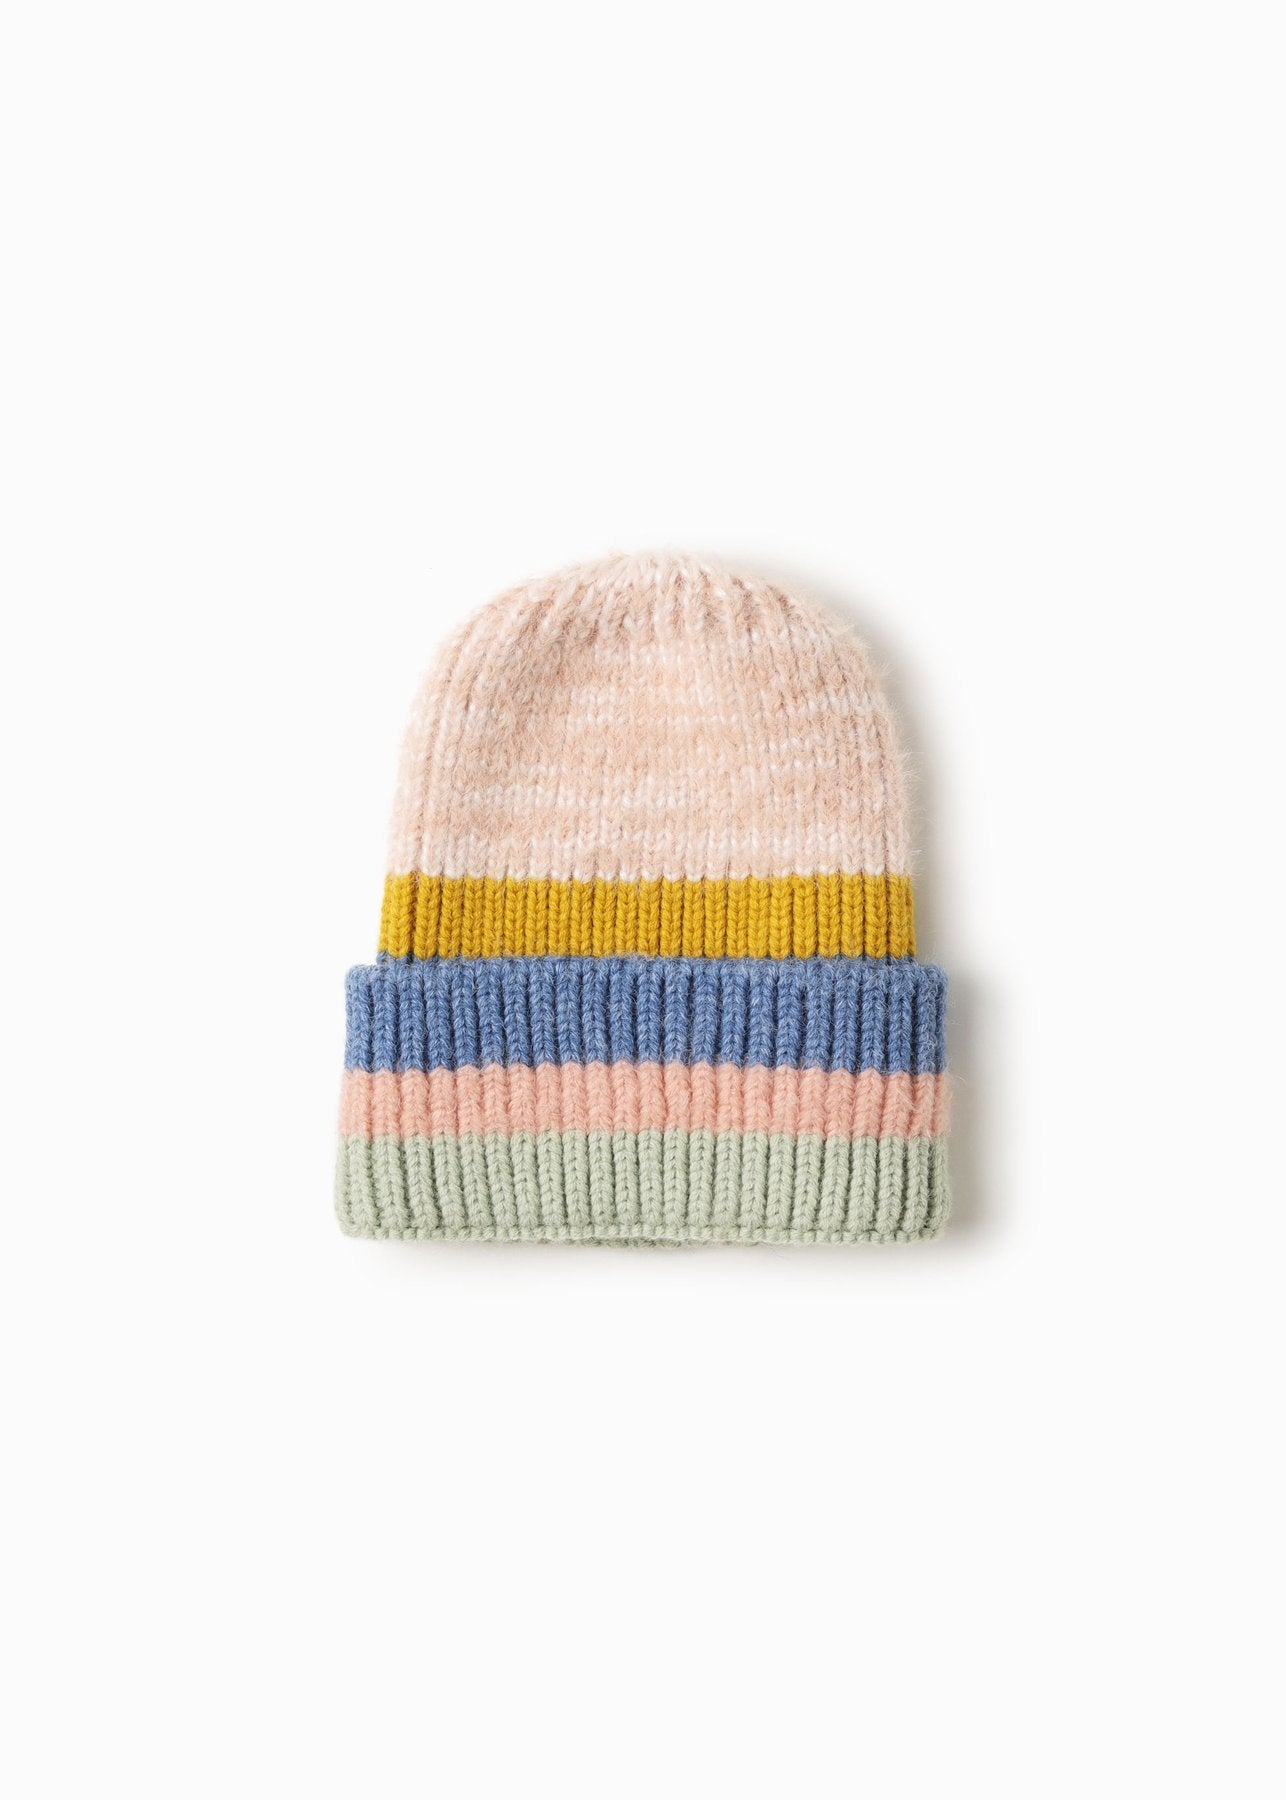 Candy Striped Hat in Blush Combo